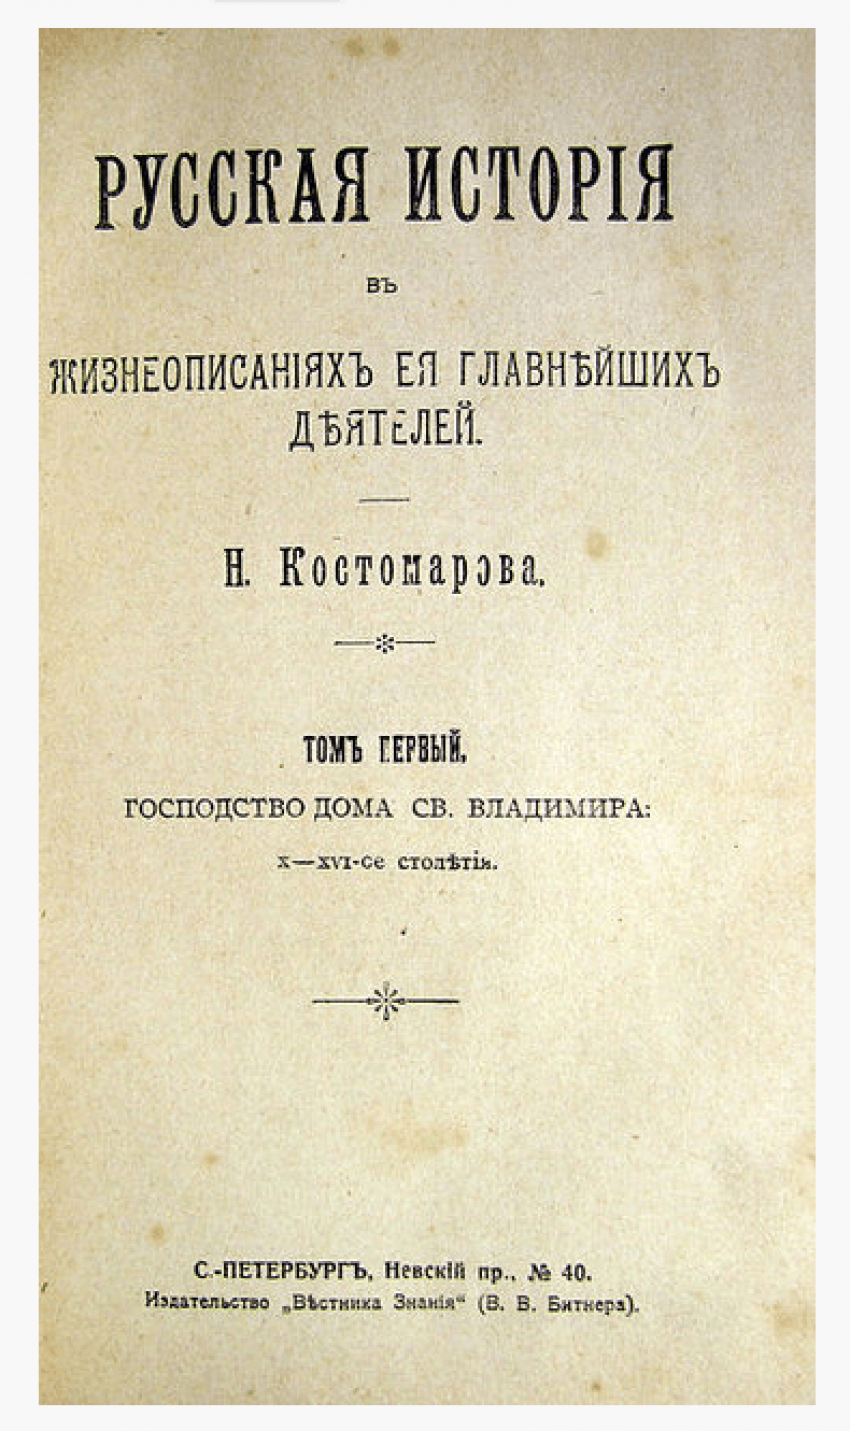 Books N. Kostomarov And. Russian history - photo 2